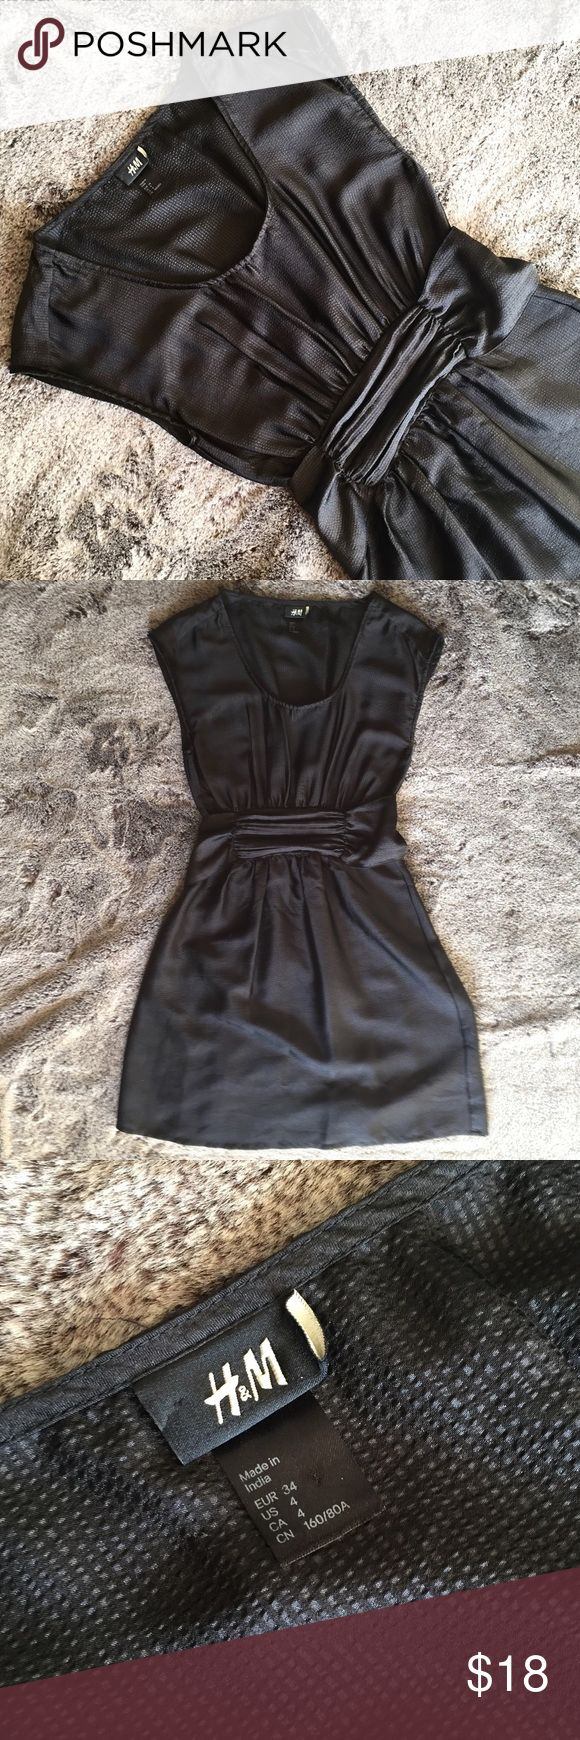 Adorable H&M black shift dress with sash Super flattering H&M dress in black with subtle stripes & shine in the material. Perfect with heels, or put on some cute leggings and a fitted jacket. Size 4, EUC H&M Dresses Mini